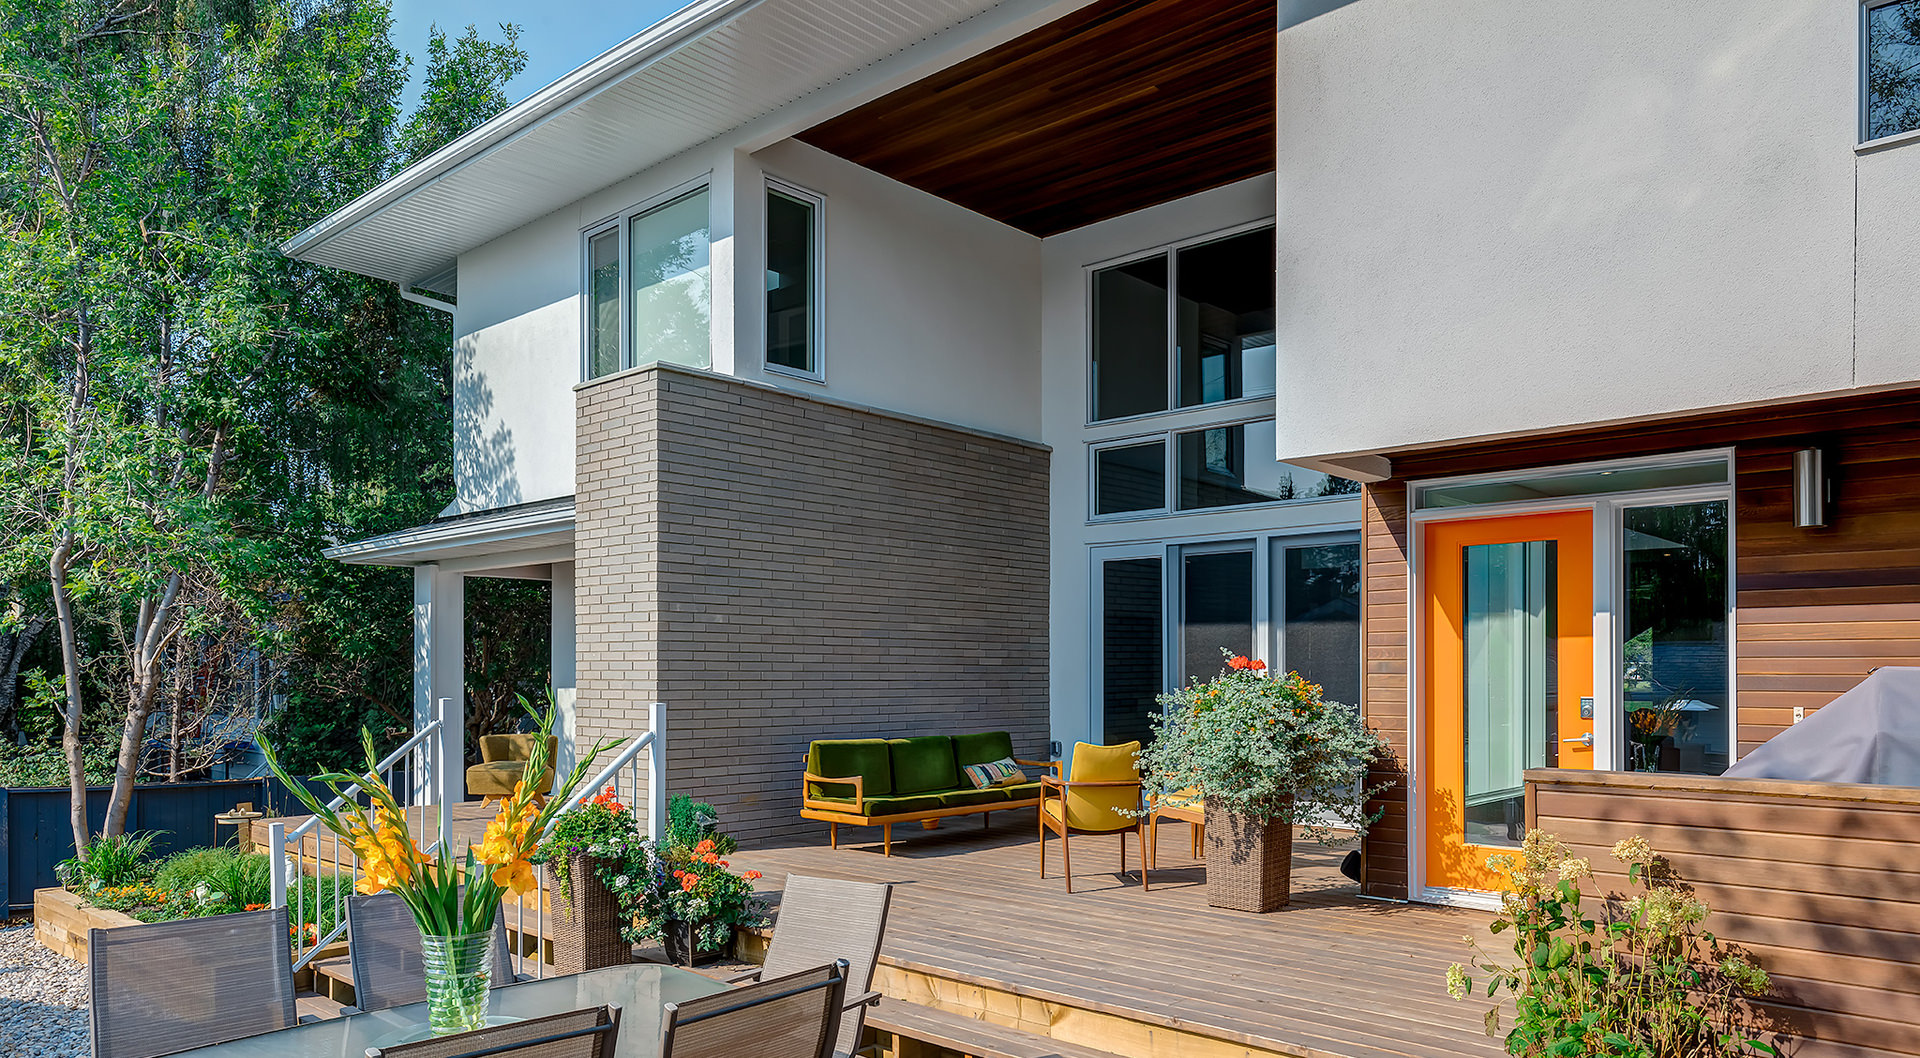 The outside porch and patio view of this house. These feature the wooden wall and flooring with the twist on the brick wall designed on the half side. Flowers and greenery are infused to provide a natural and refreshing site.